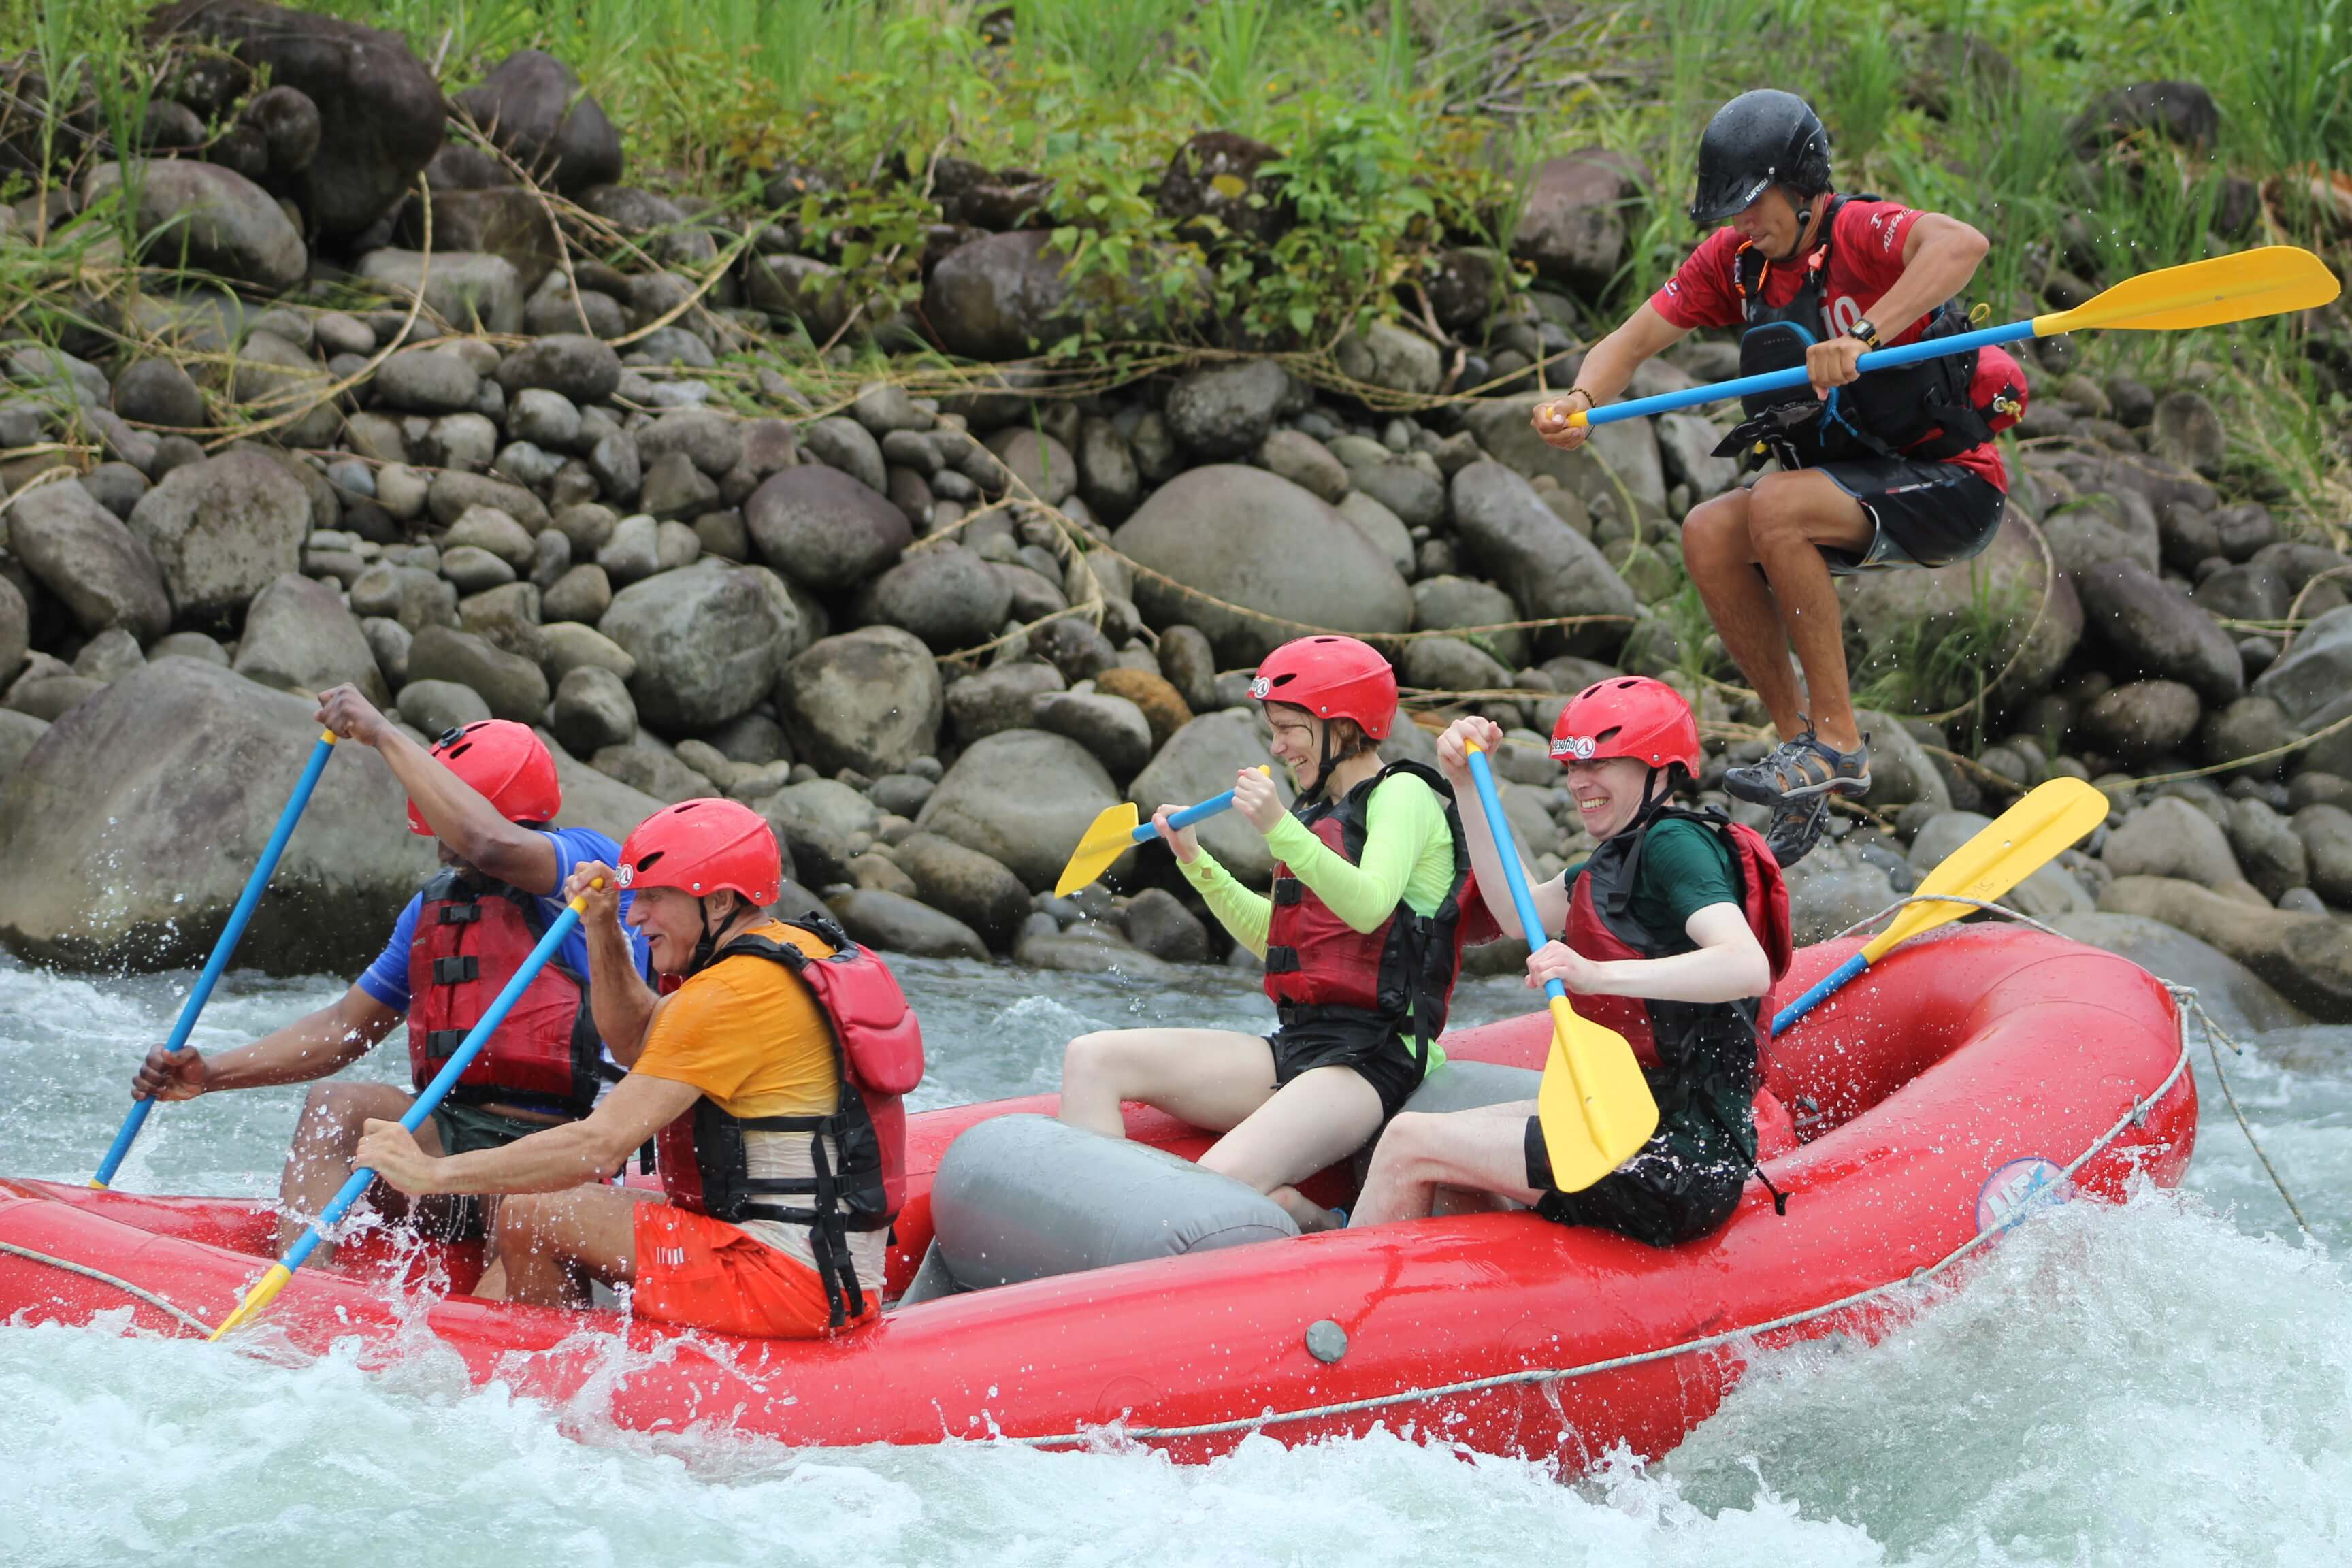 Our guides enjoy their jobs on this extreme white waterrafting trip in Costa Rica on the Sarapiqui River.